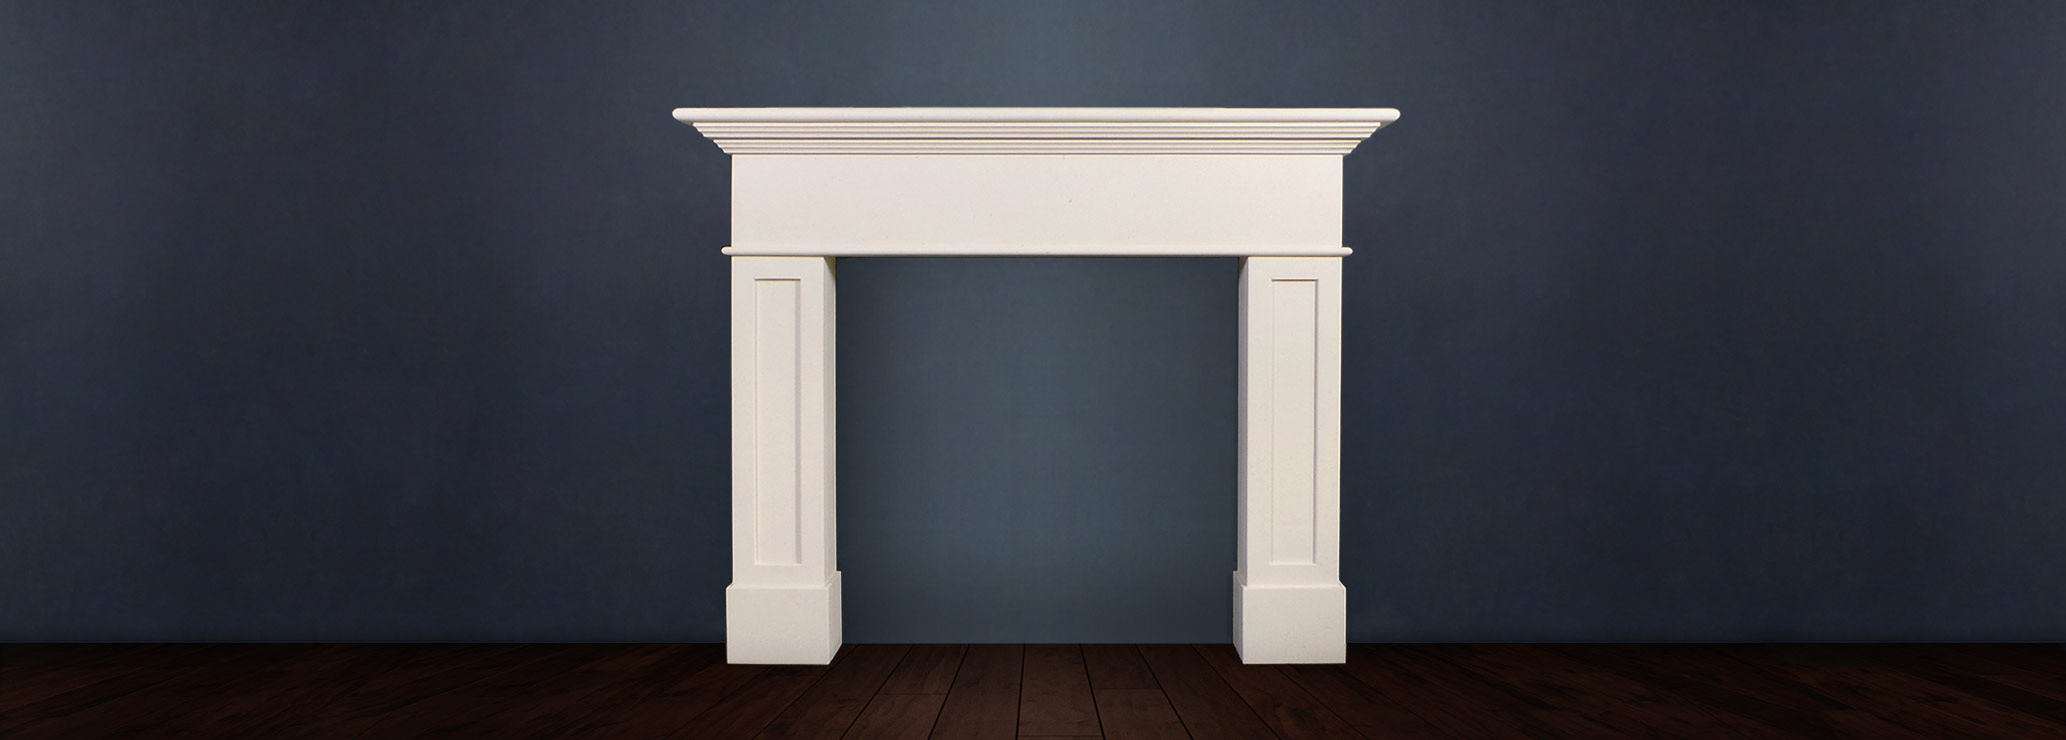 The Oxford fireplace is a regency designed surround period in style and stature brings a sense of scale to both traditional and contemporary interiors